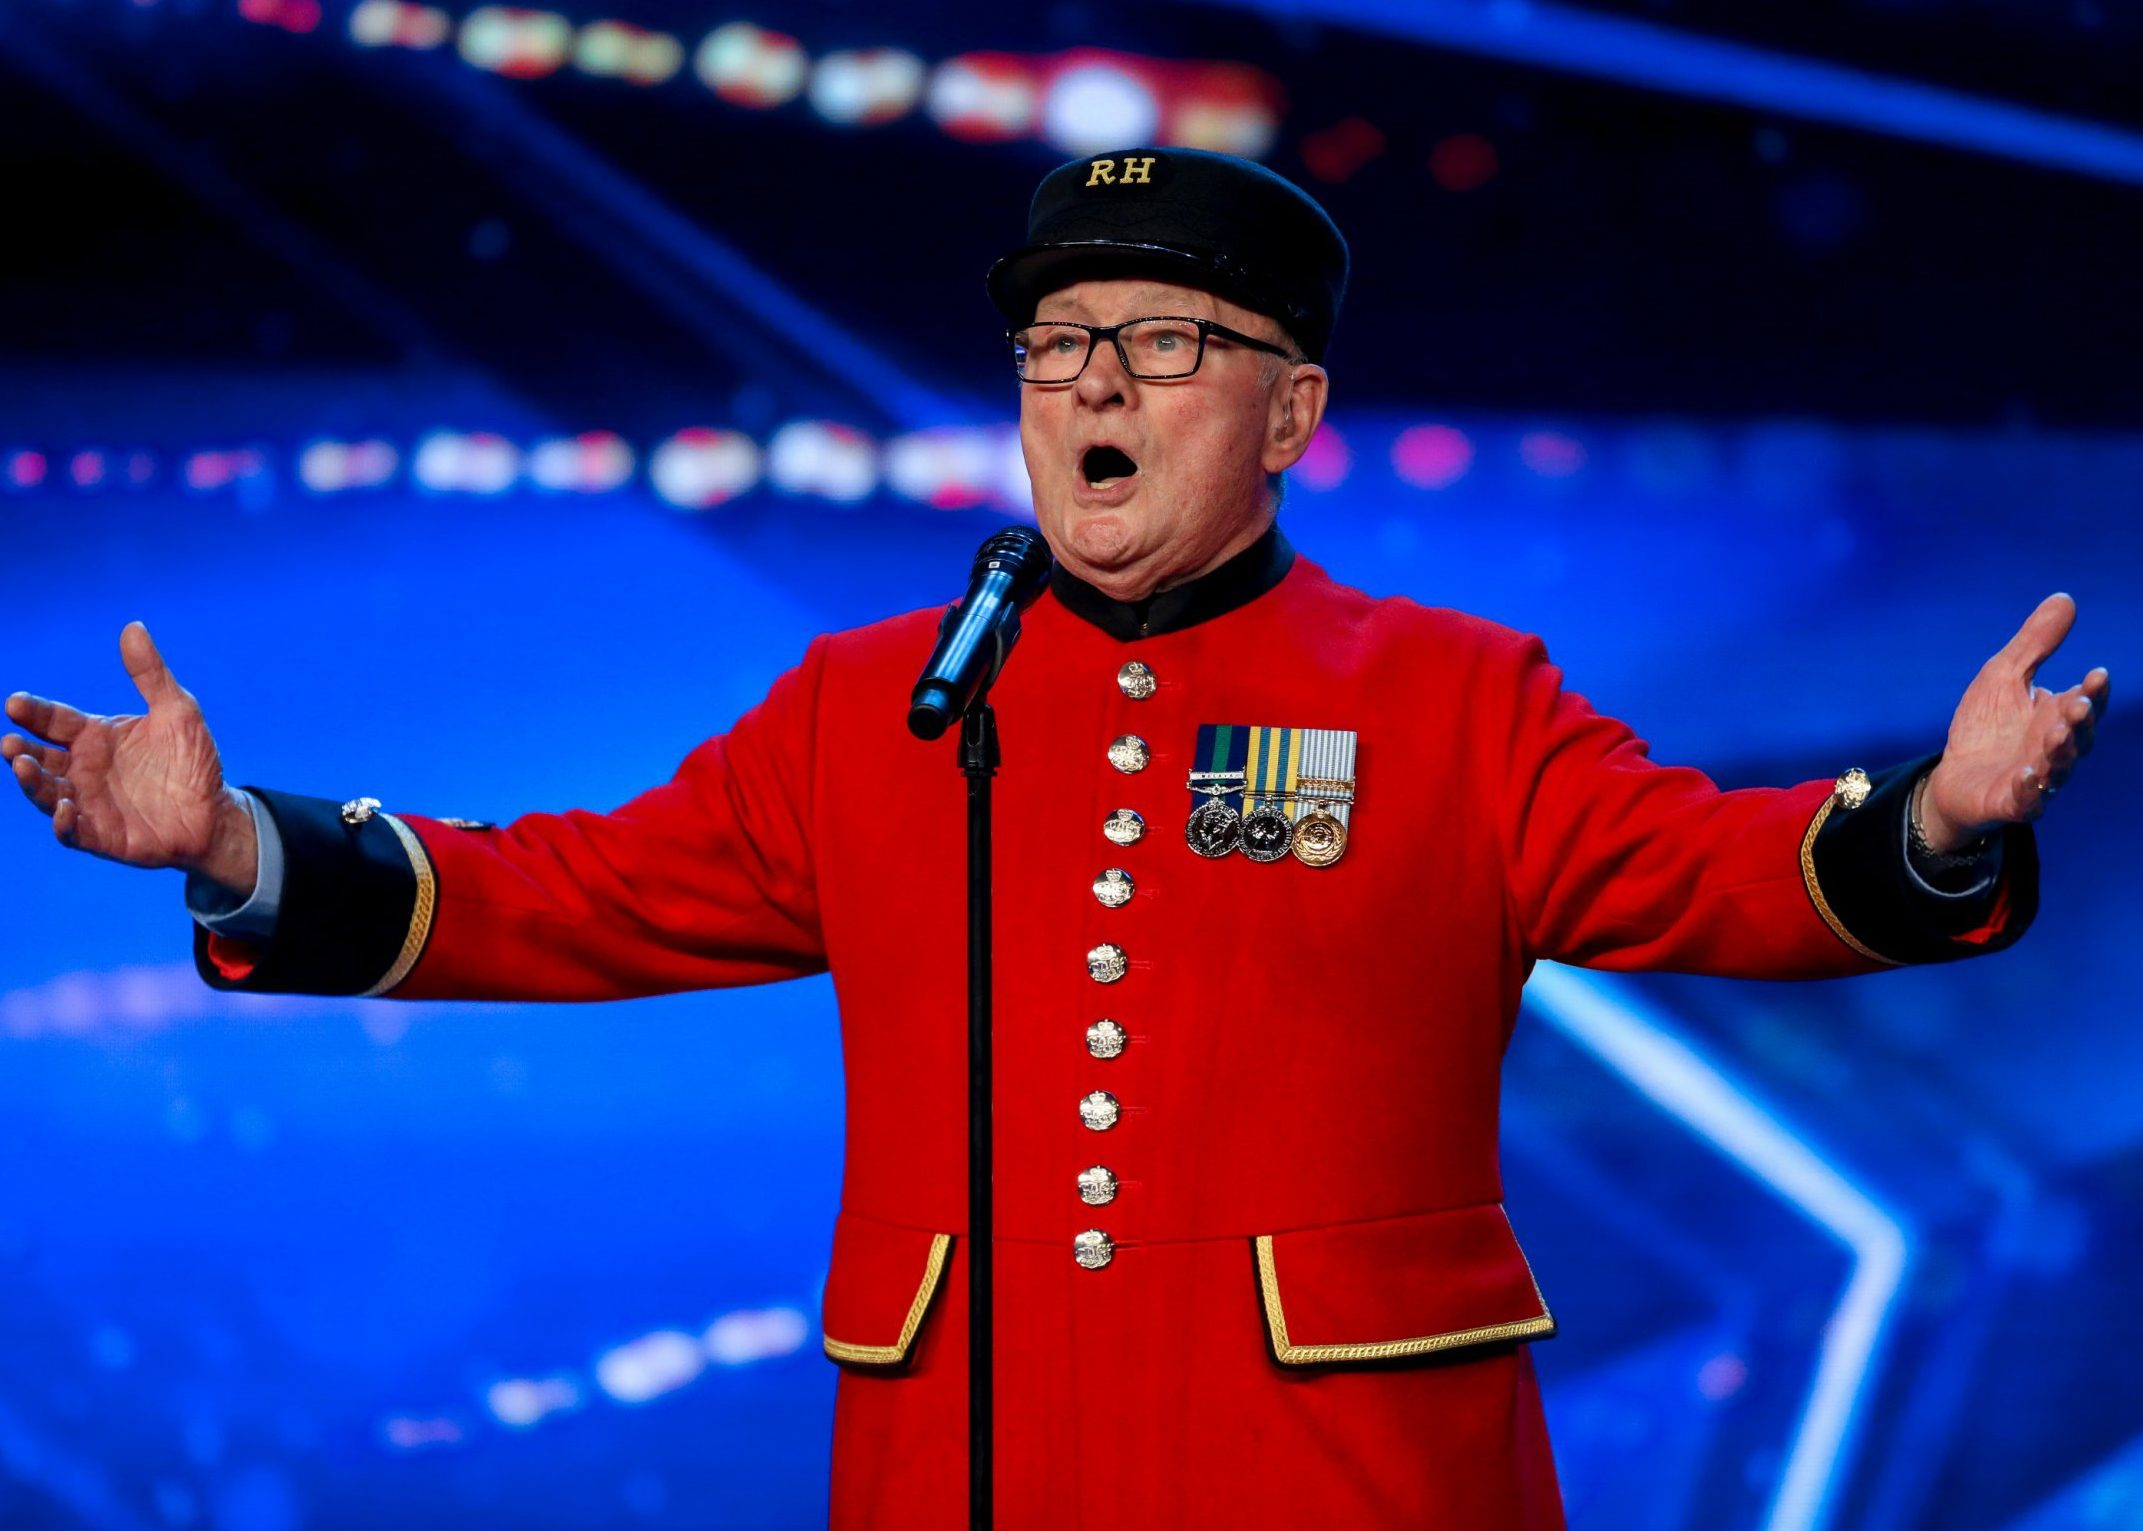 Colin Thackery auditions on Britain's Got Talent episode 6, dedicating the performance to his late wife